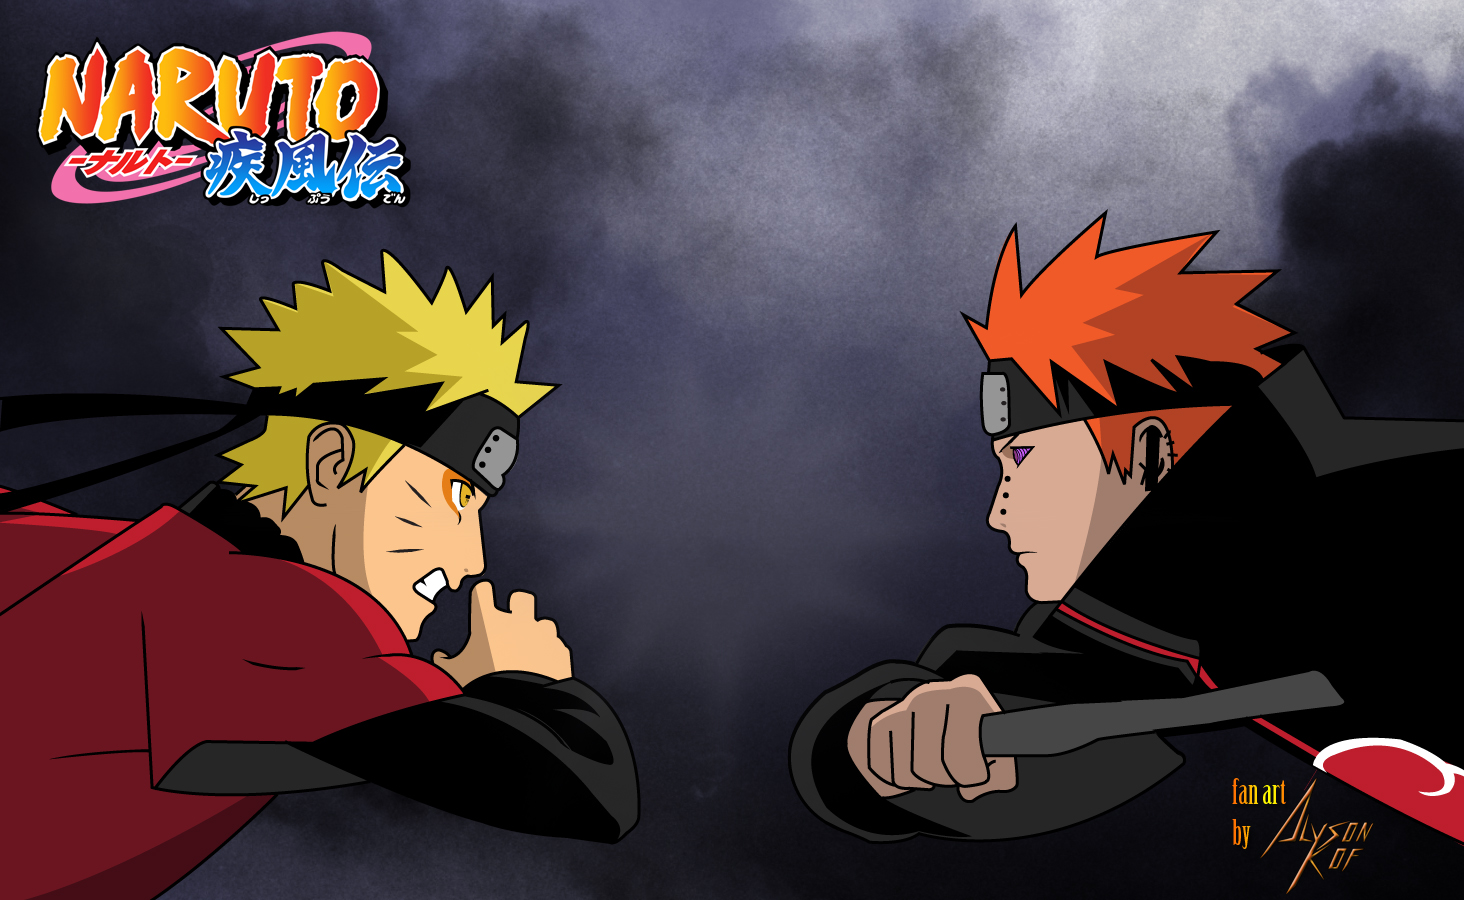 Download Video Naruto Shippuden Eps 163 - 169 Naruto Vs Pain Sub Indo